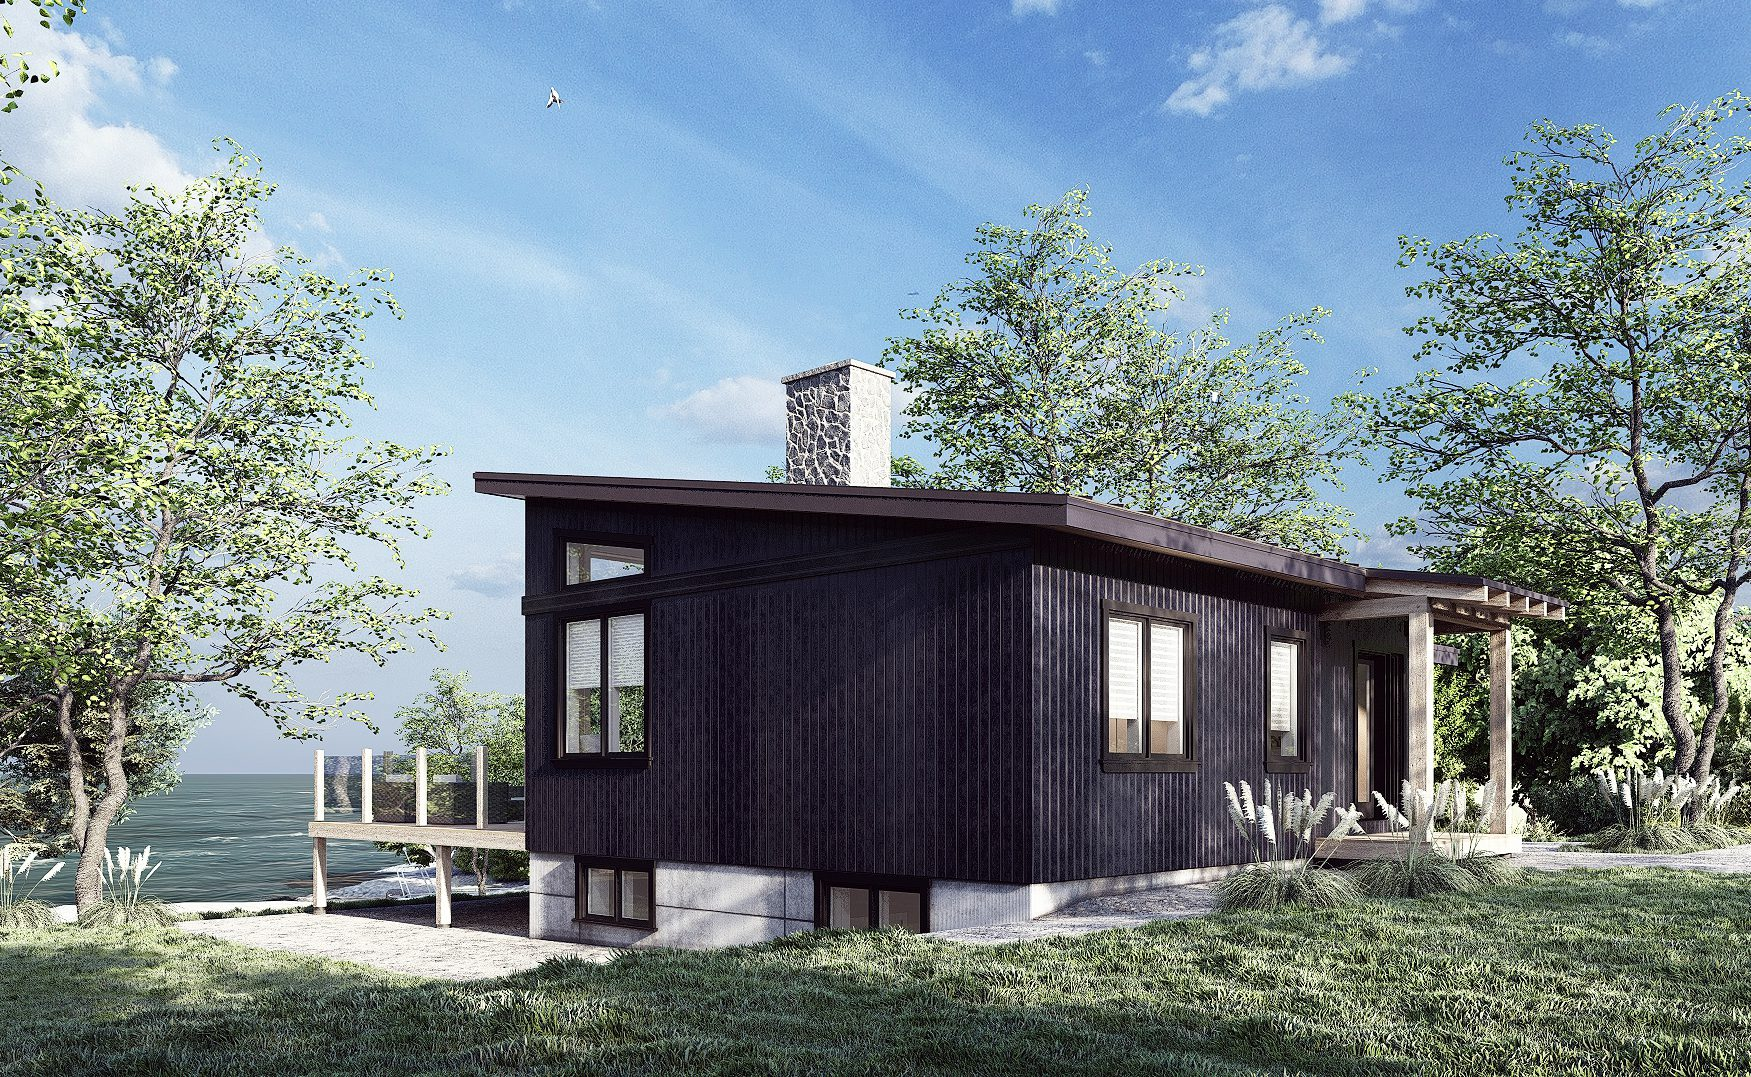 Normerica Timber Frames, House Plan, The Laurentian, Exterior, Side